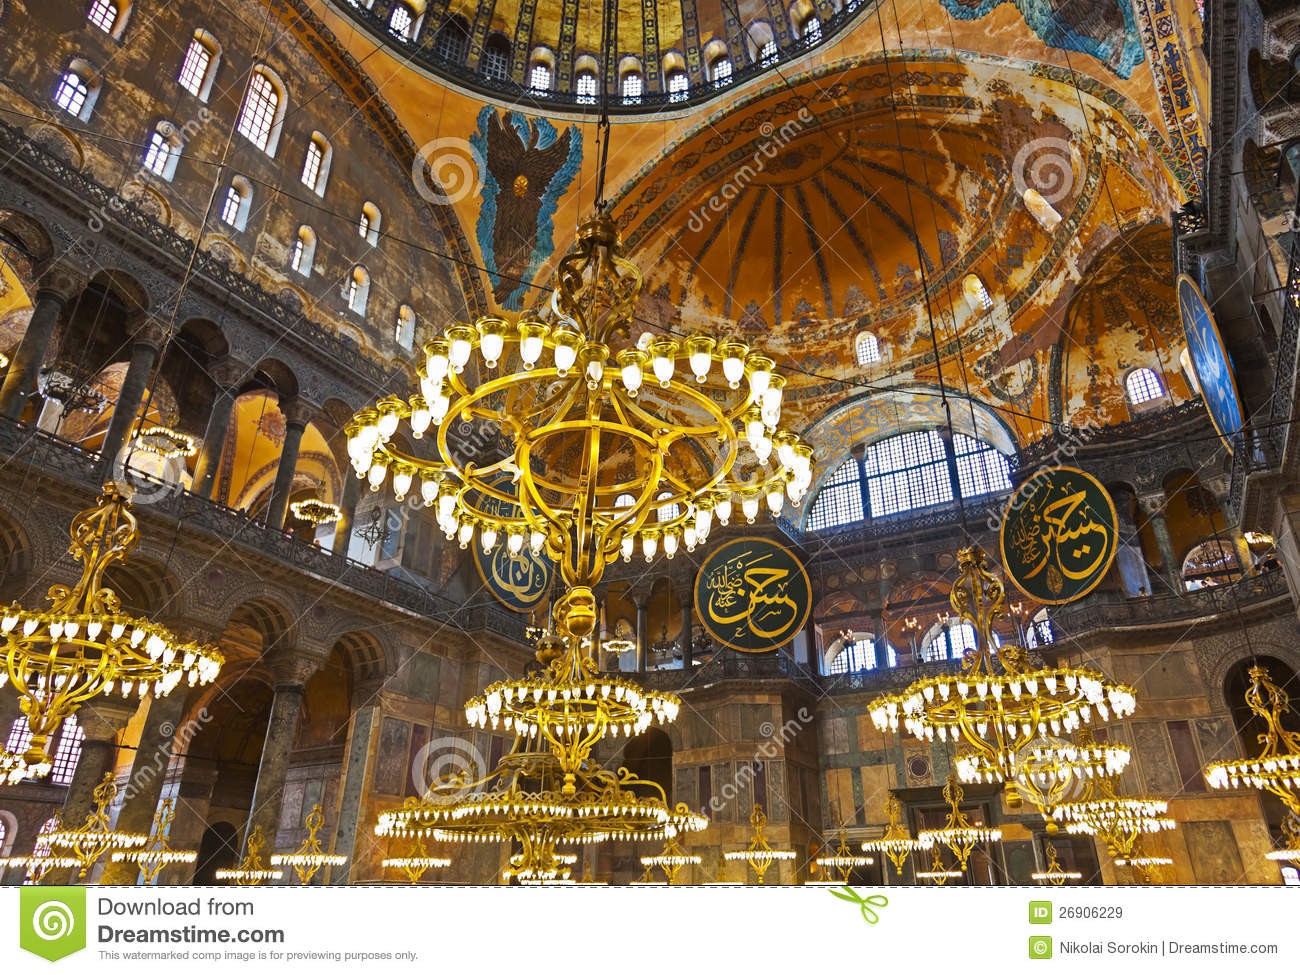 Mosaic Interior In Hagia Sophia At Istanbul Turkey Royalty Free Stock Image  | CartoonDealer.com #24600352